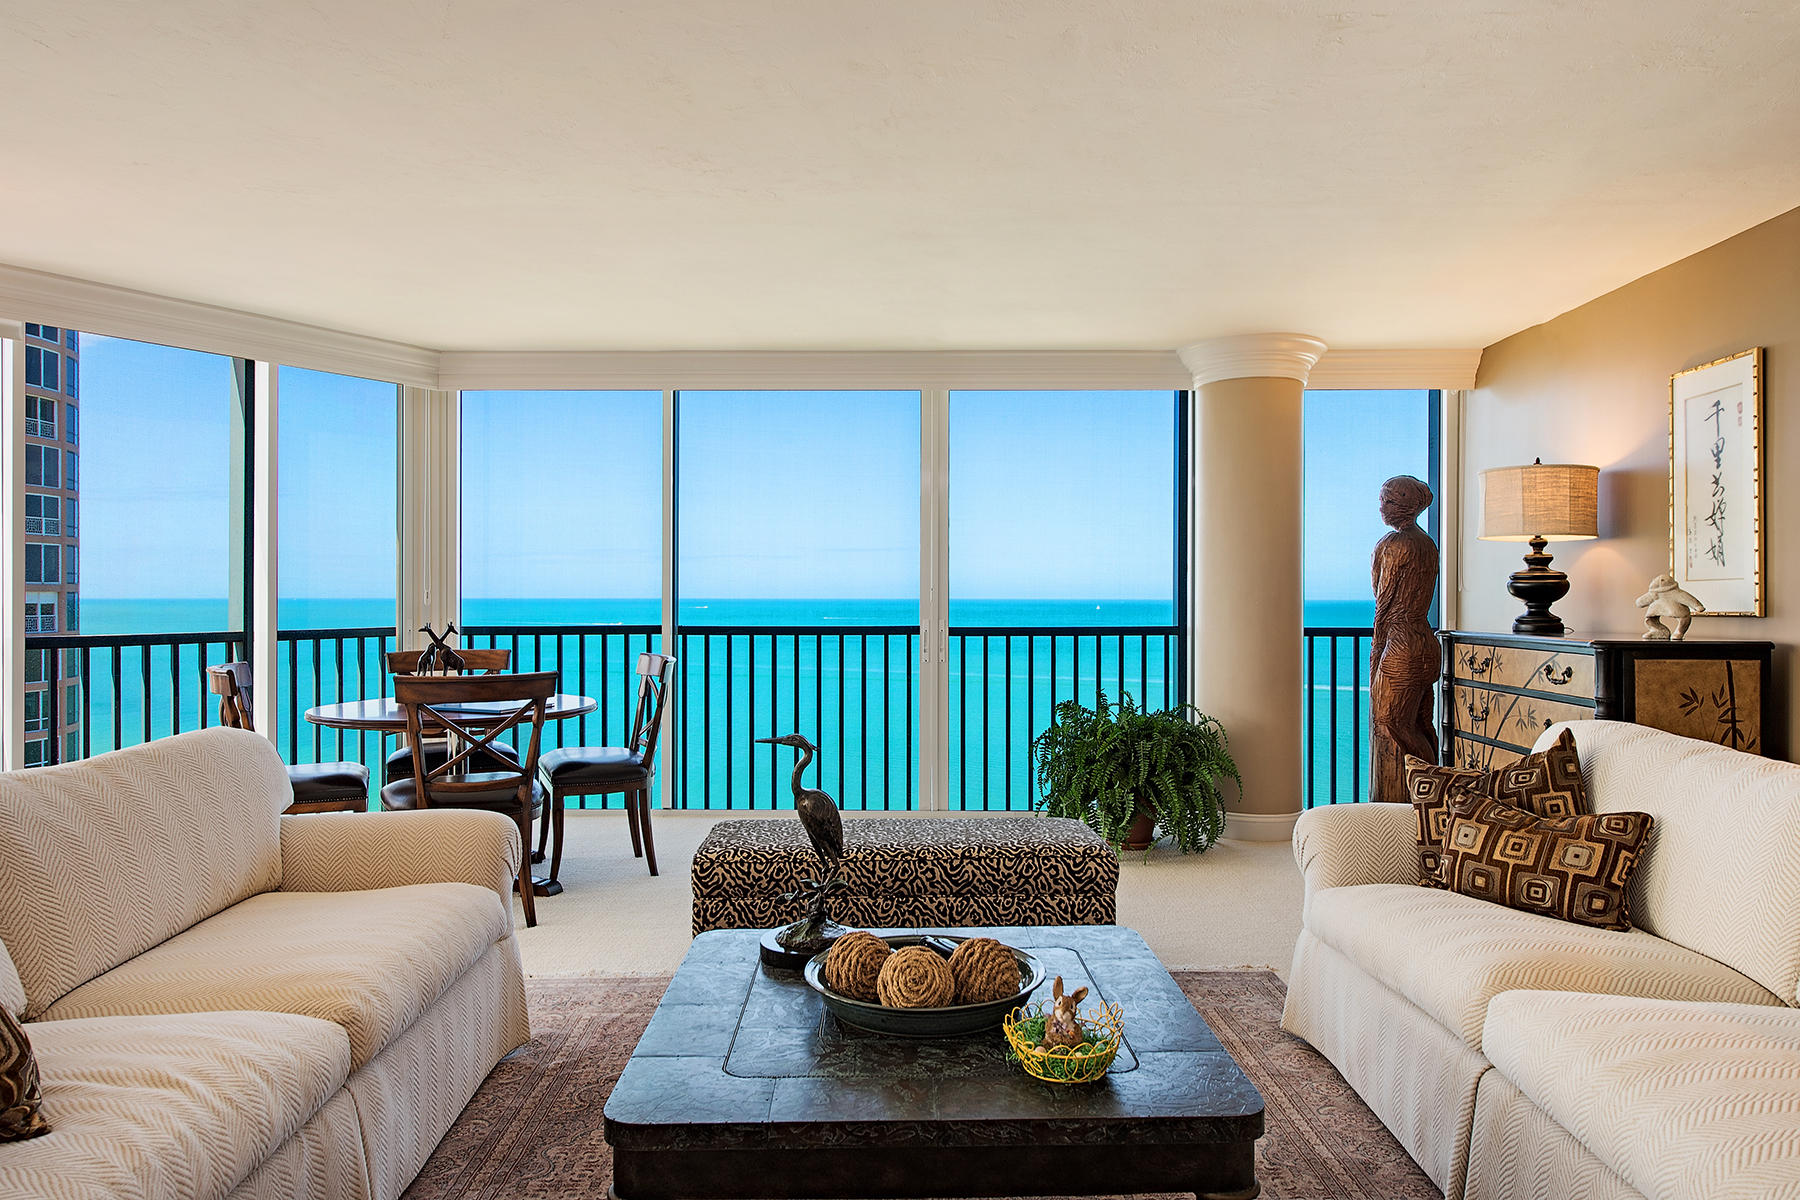 Condominium for Sale at PARK SHORE - VISTAS AT PARK SHORE 4651 Gulf Shore Blvd N 1901, Naples, Florida 34103 United States